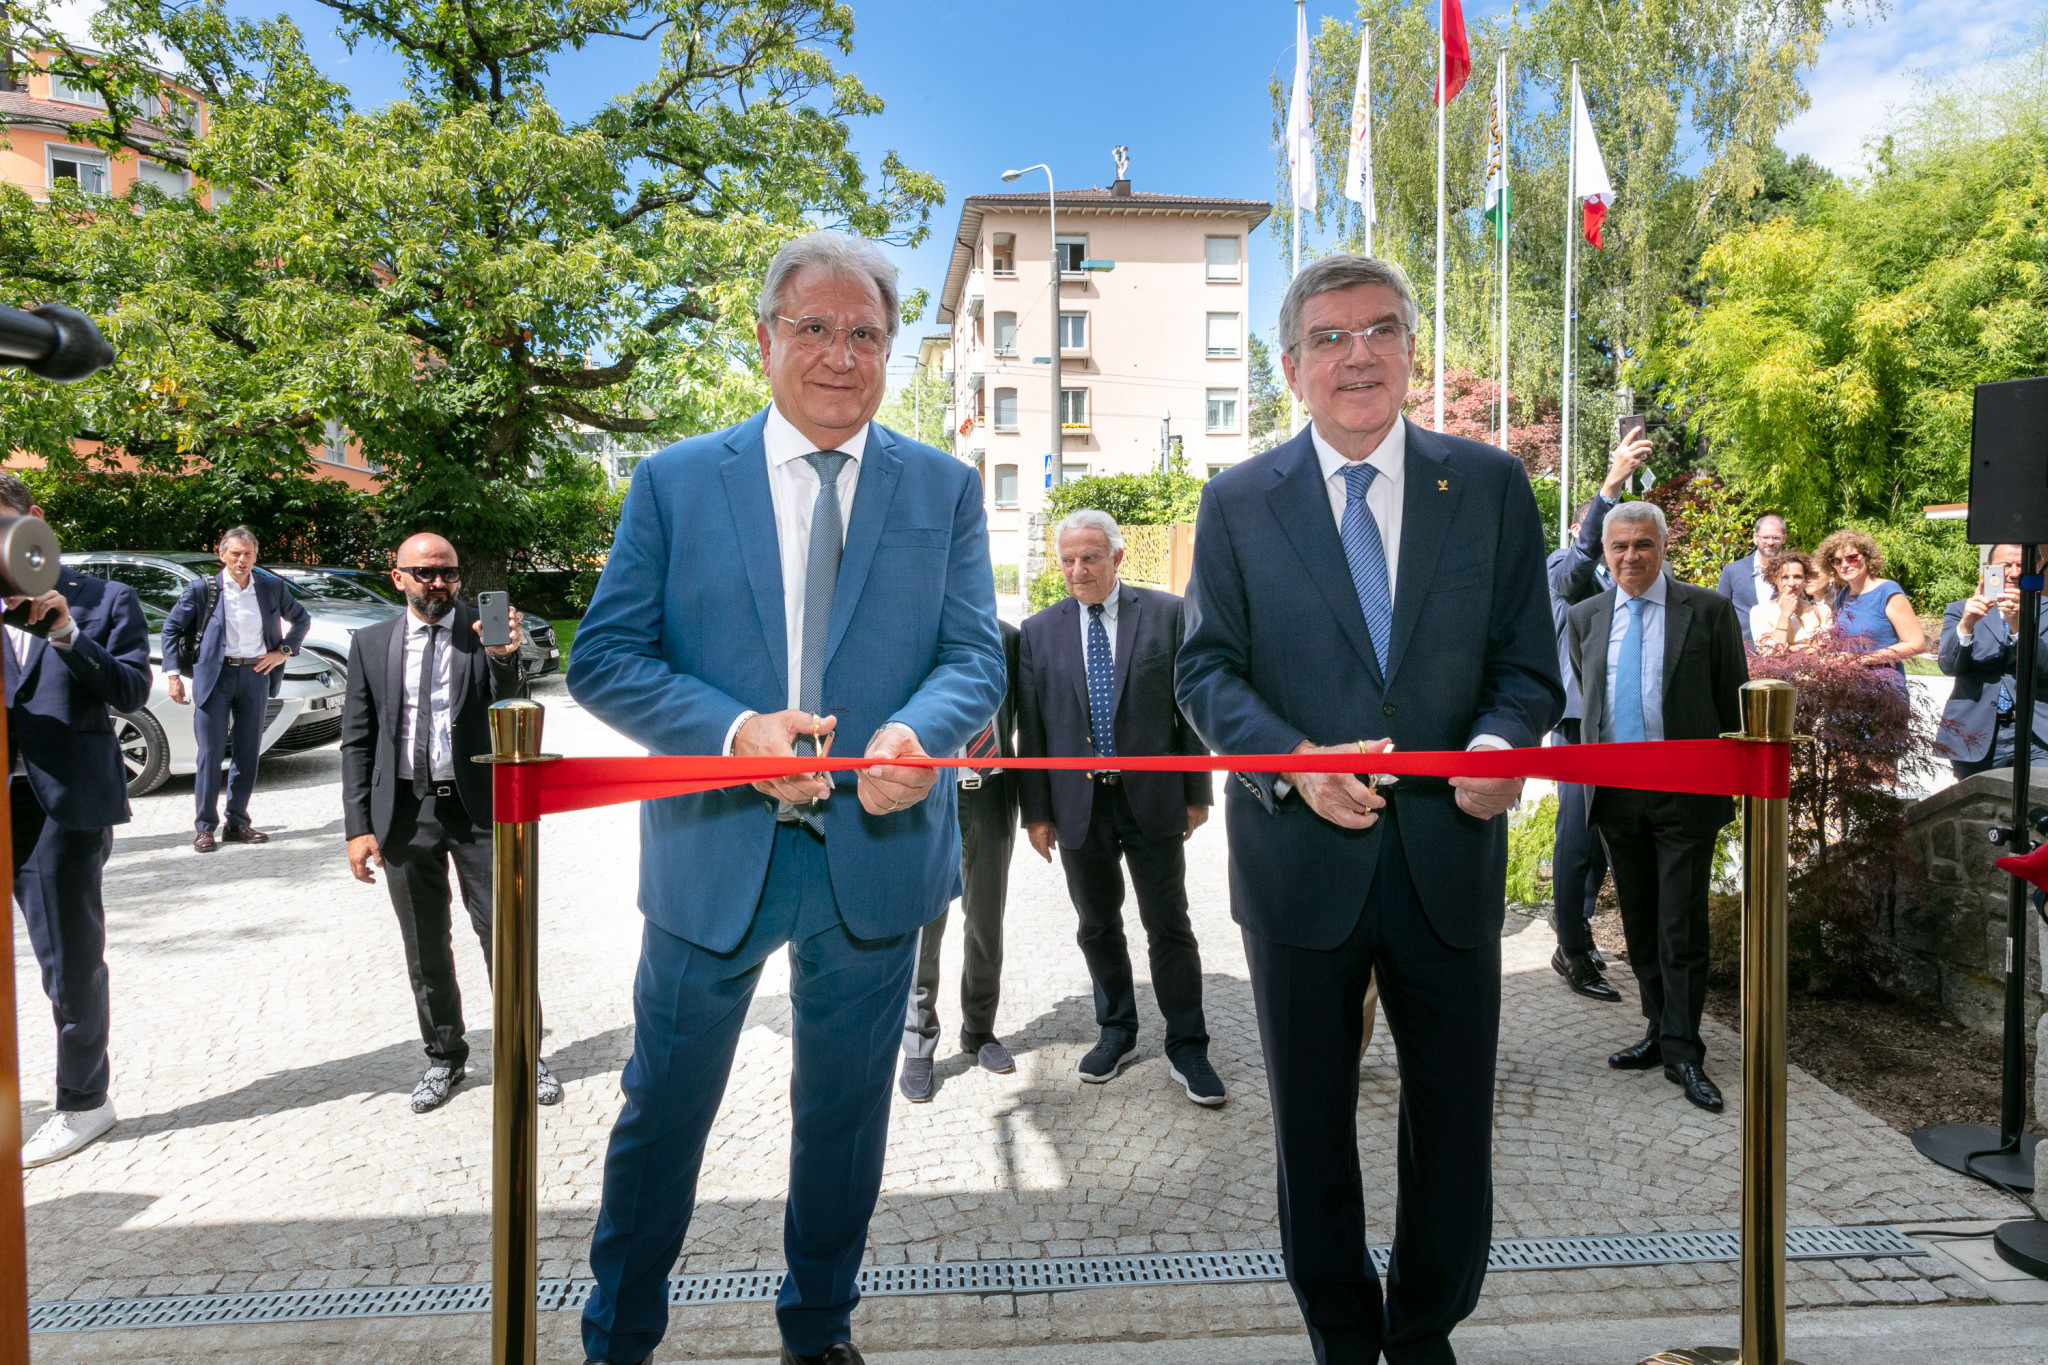 IOC President Thomas Bach attended the official opening of the new WBSC headquarters in Pully ©WBSC